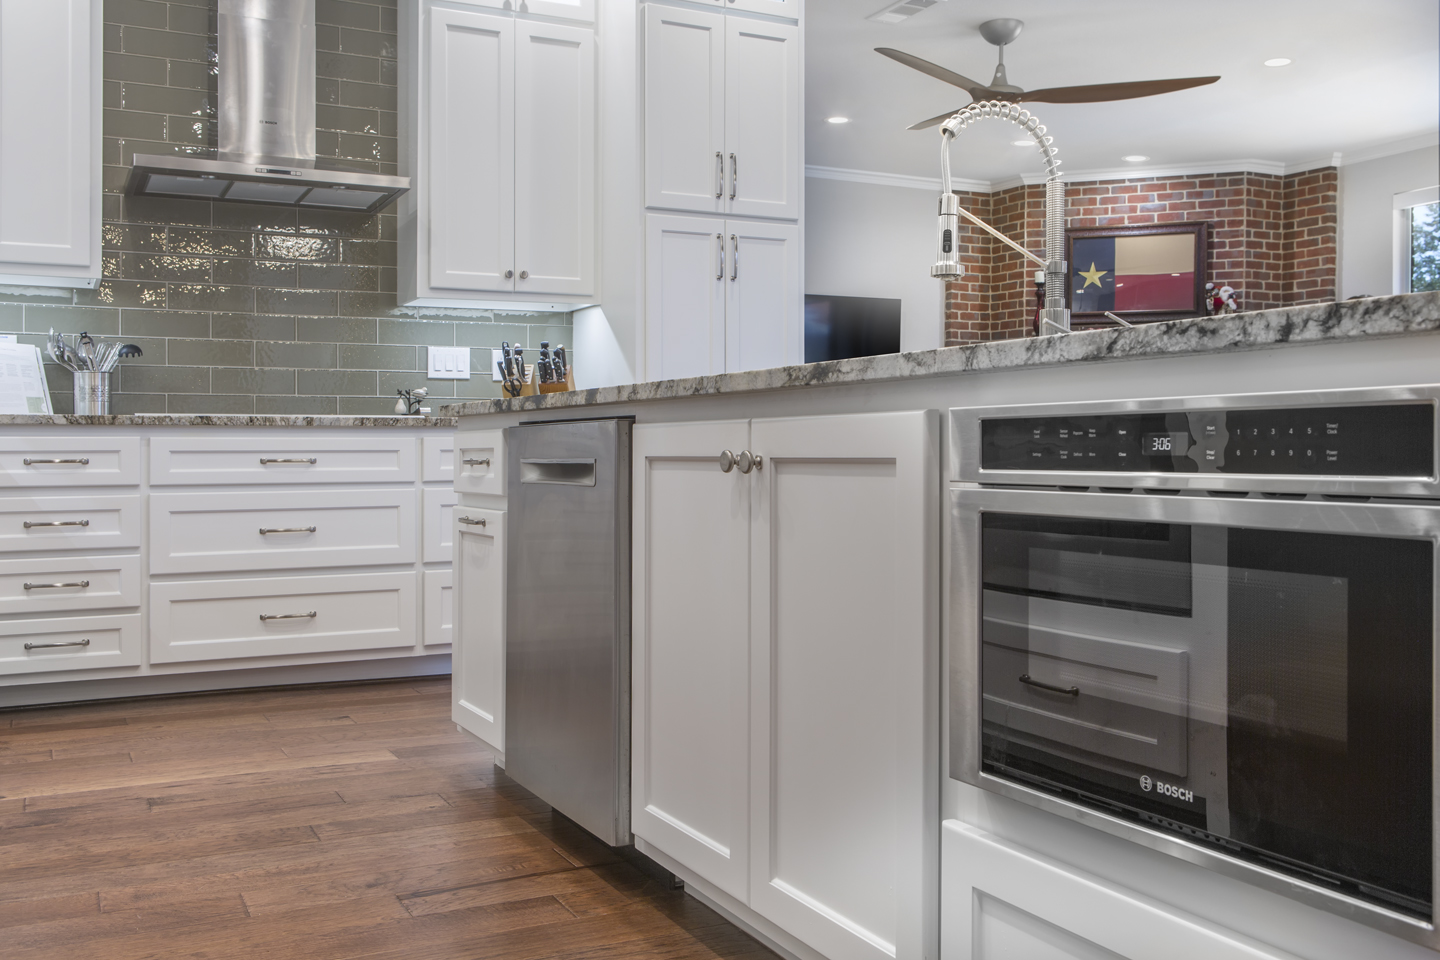 angled shot of kitchen island showcasing under counter microwave drawer, dishwasher, and pull-out trash bin.